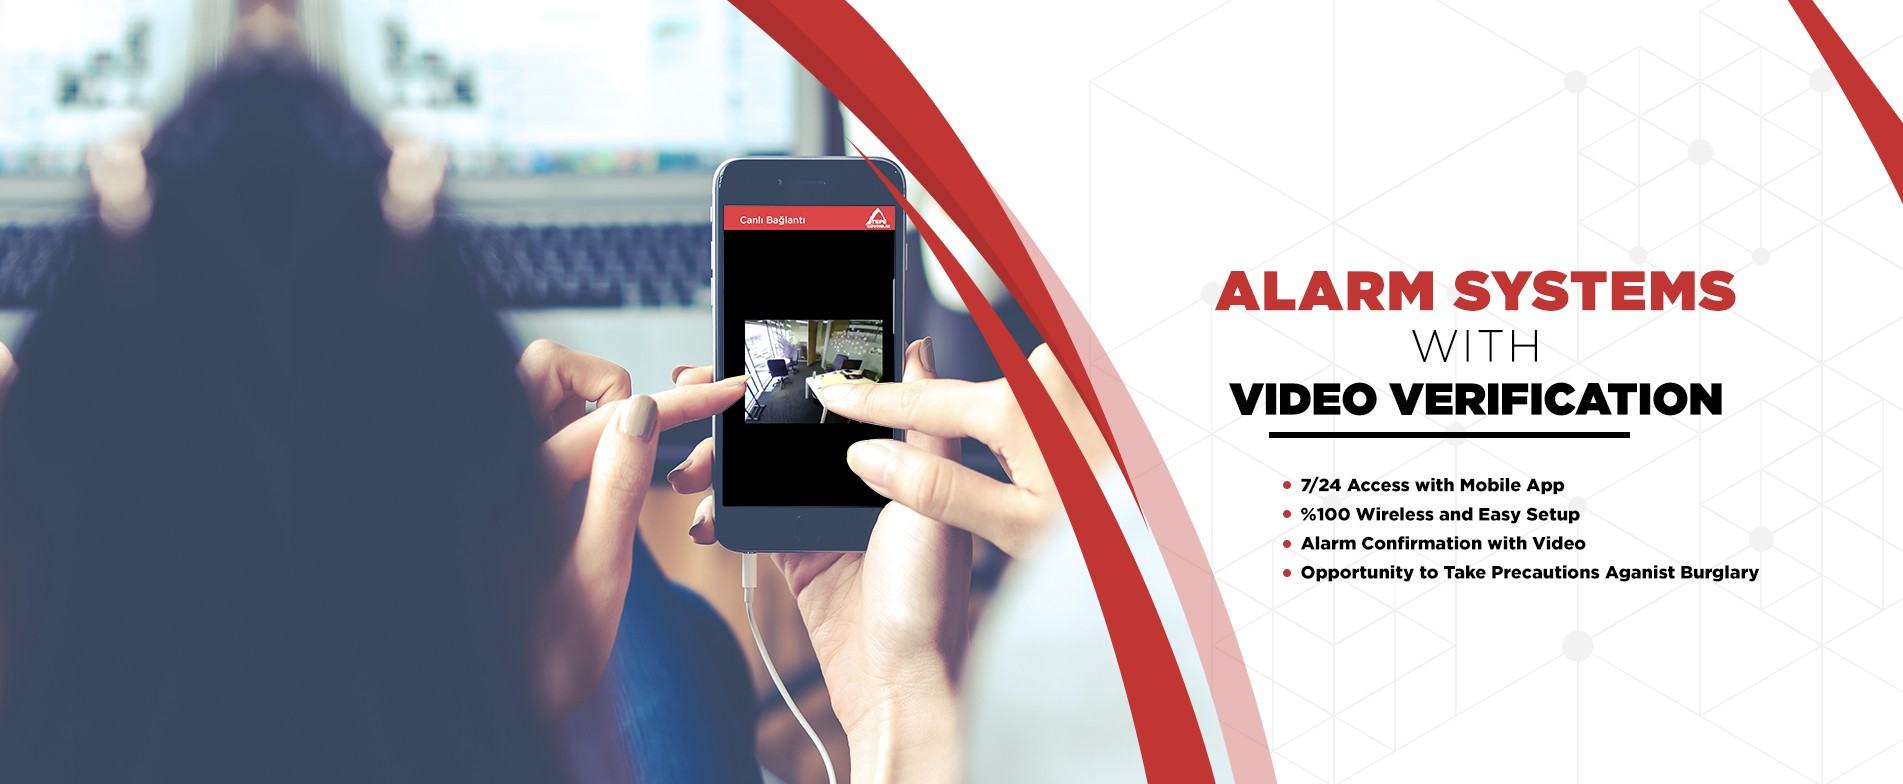 Alarm System With Video Verification